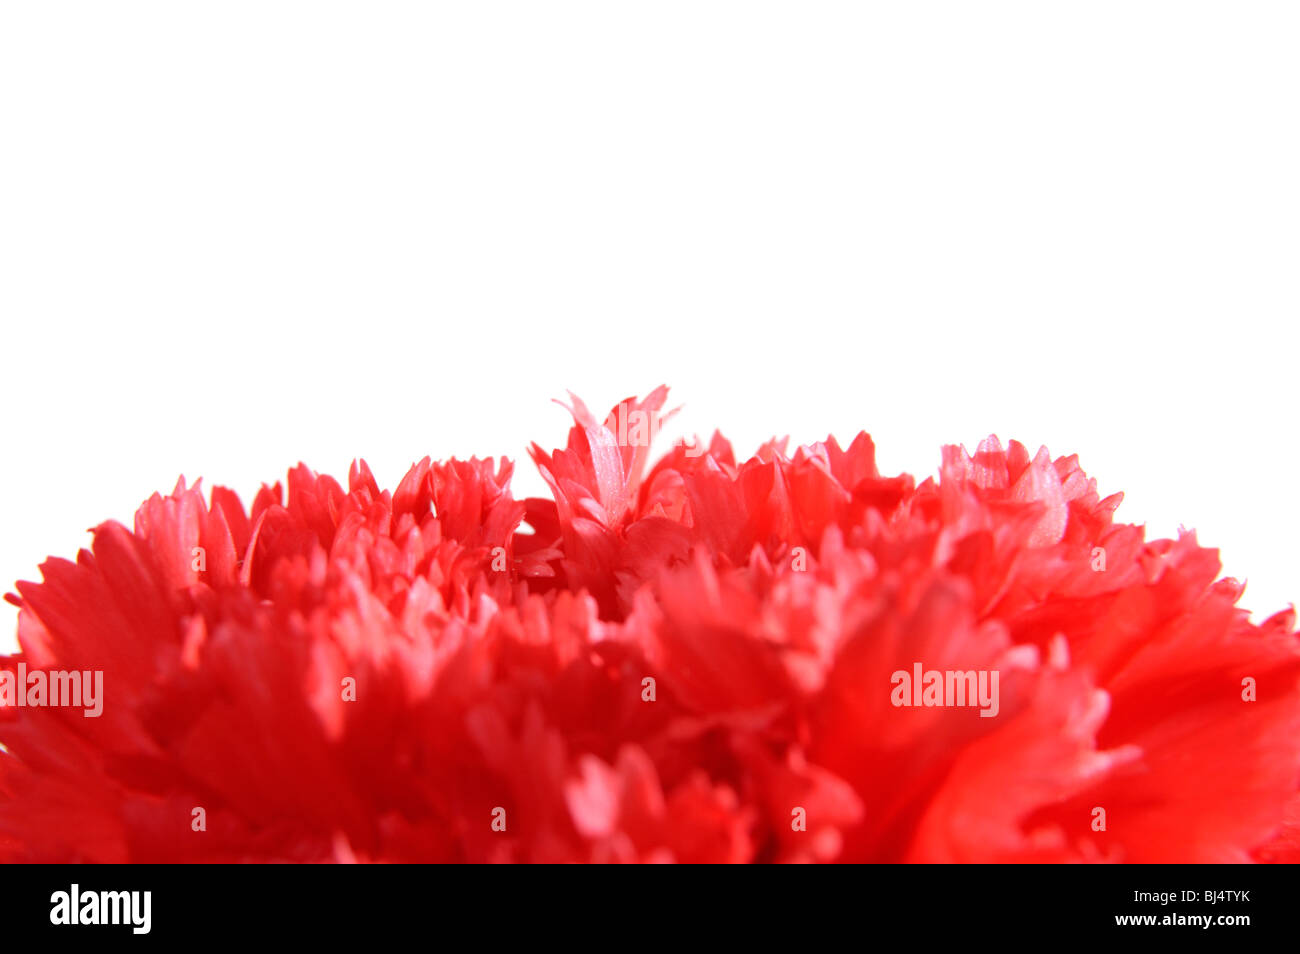 Carnation Colors Stock Photos & Carnation Colors Stock Images - Alamy